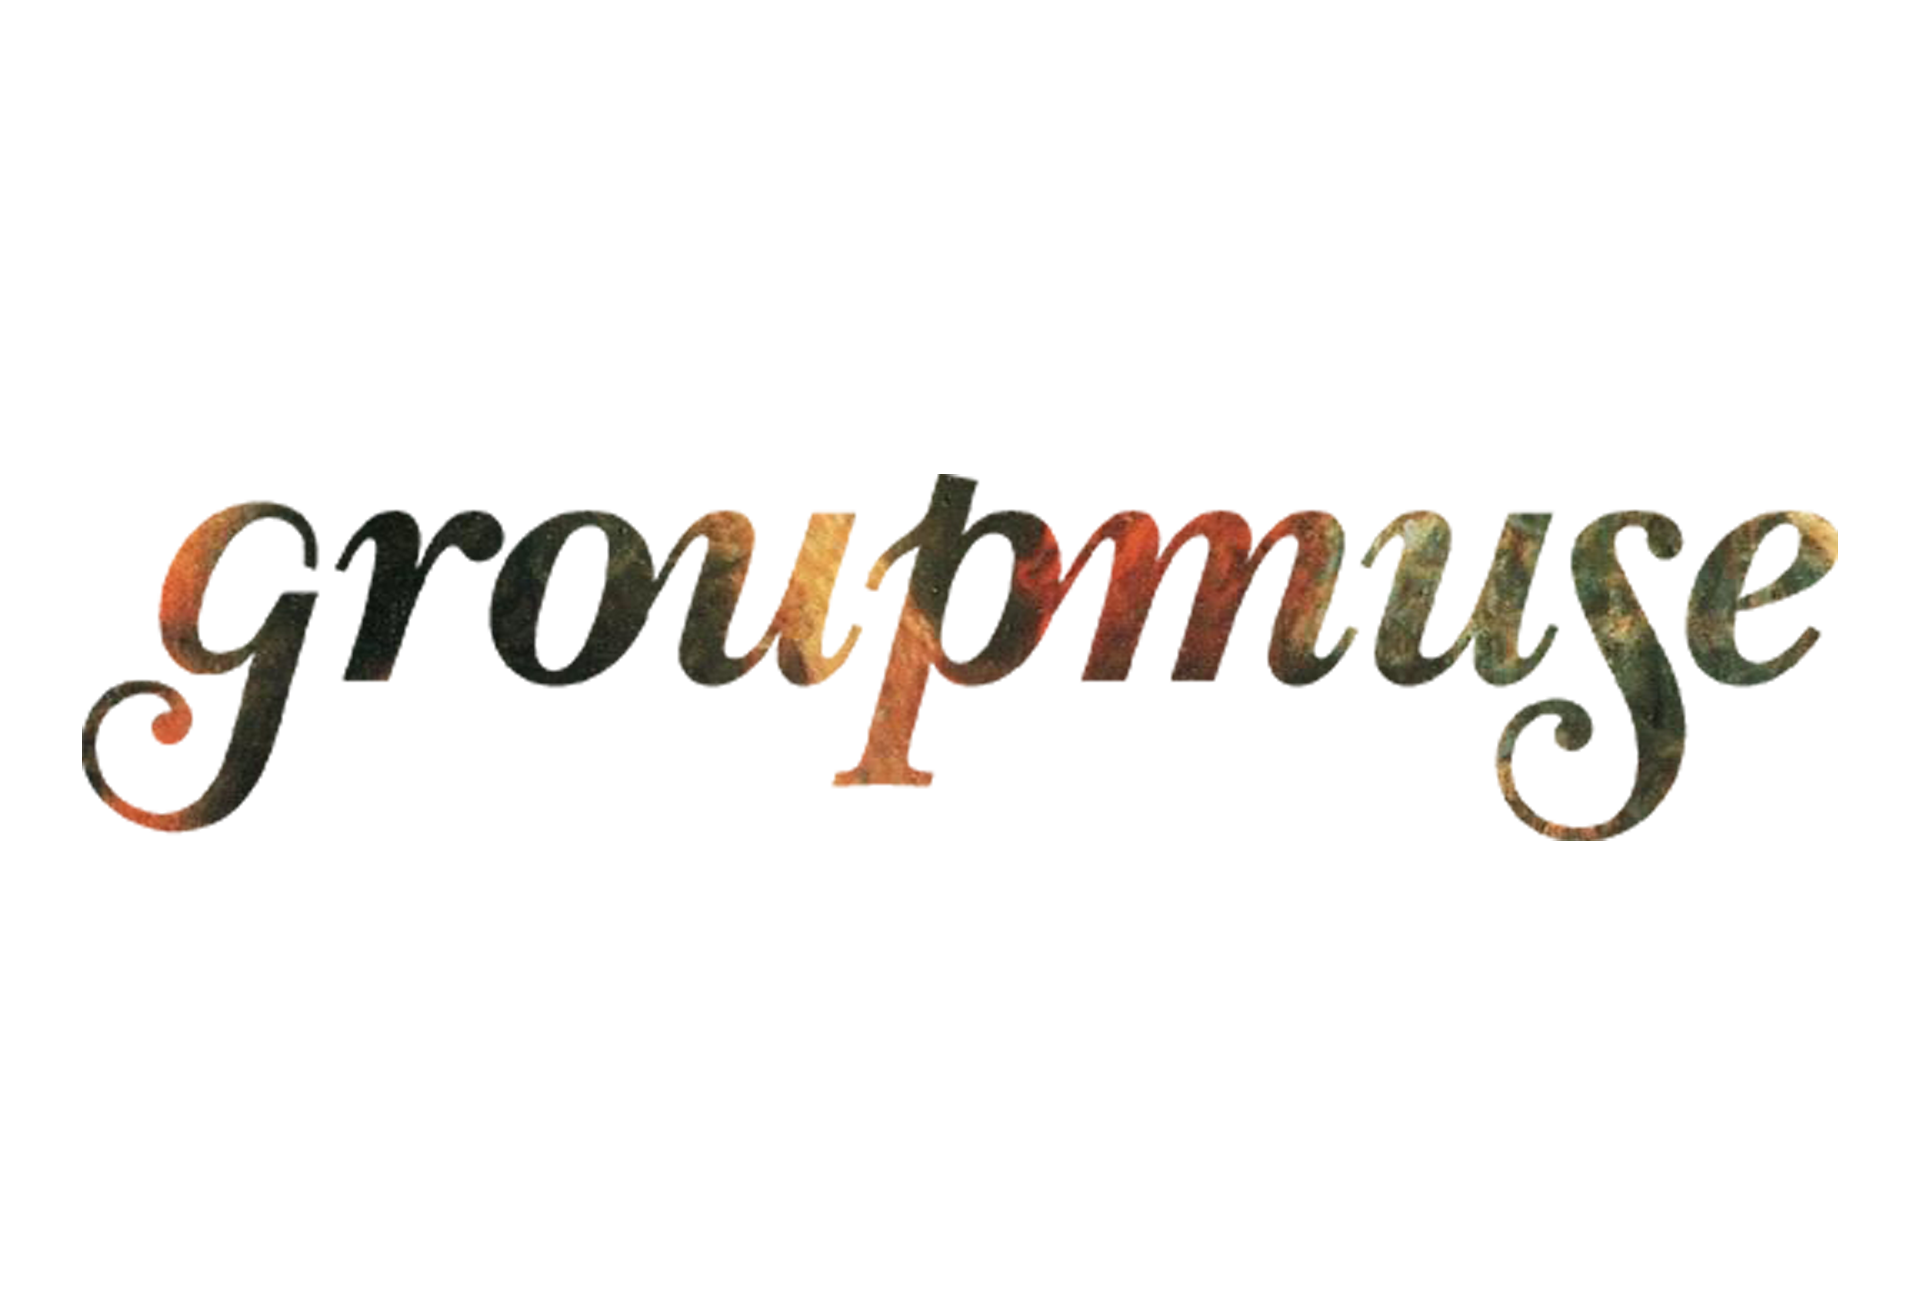 "groupmuse - Groupmuse is a platform enabling communities to come together around great art; an online social network that connects young classical musicians to local audiences through concert house parties. Groupmuse brings us together to nourish and harmonize our inner lives and our social, ""outer"" lives. By deepening our interior worlds with timeless, contemplative music and enriching our social lives with inclusive, joyous community, Groupmuse seeks a greater wholeness in your neighborhood and around the world."